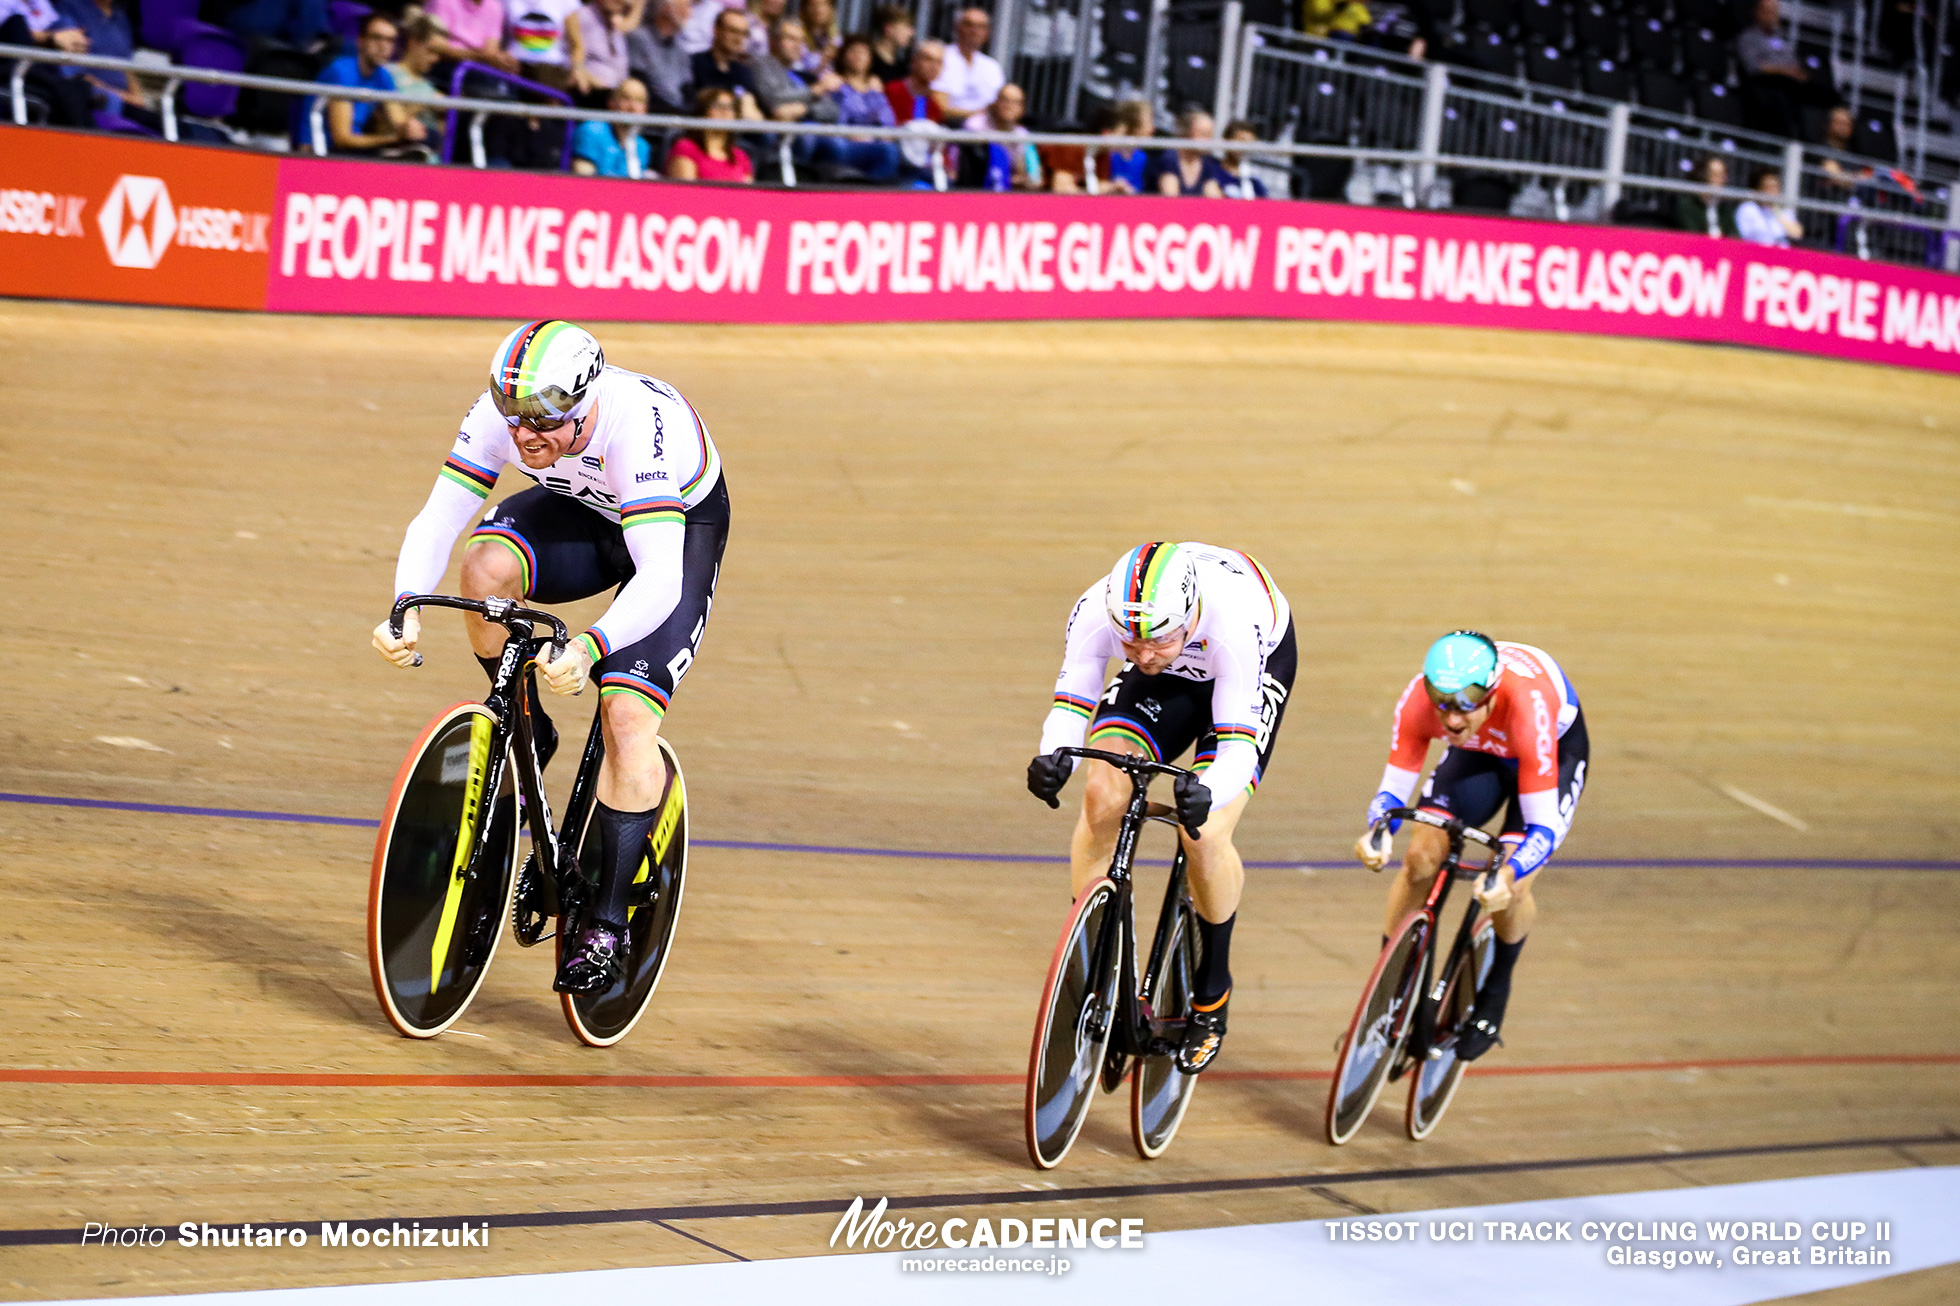 Men's Team Sprint / TISSOT UCI TRACK CYCLING WORLD CUP II, Glasgow, Great Britain